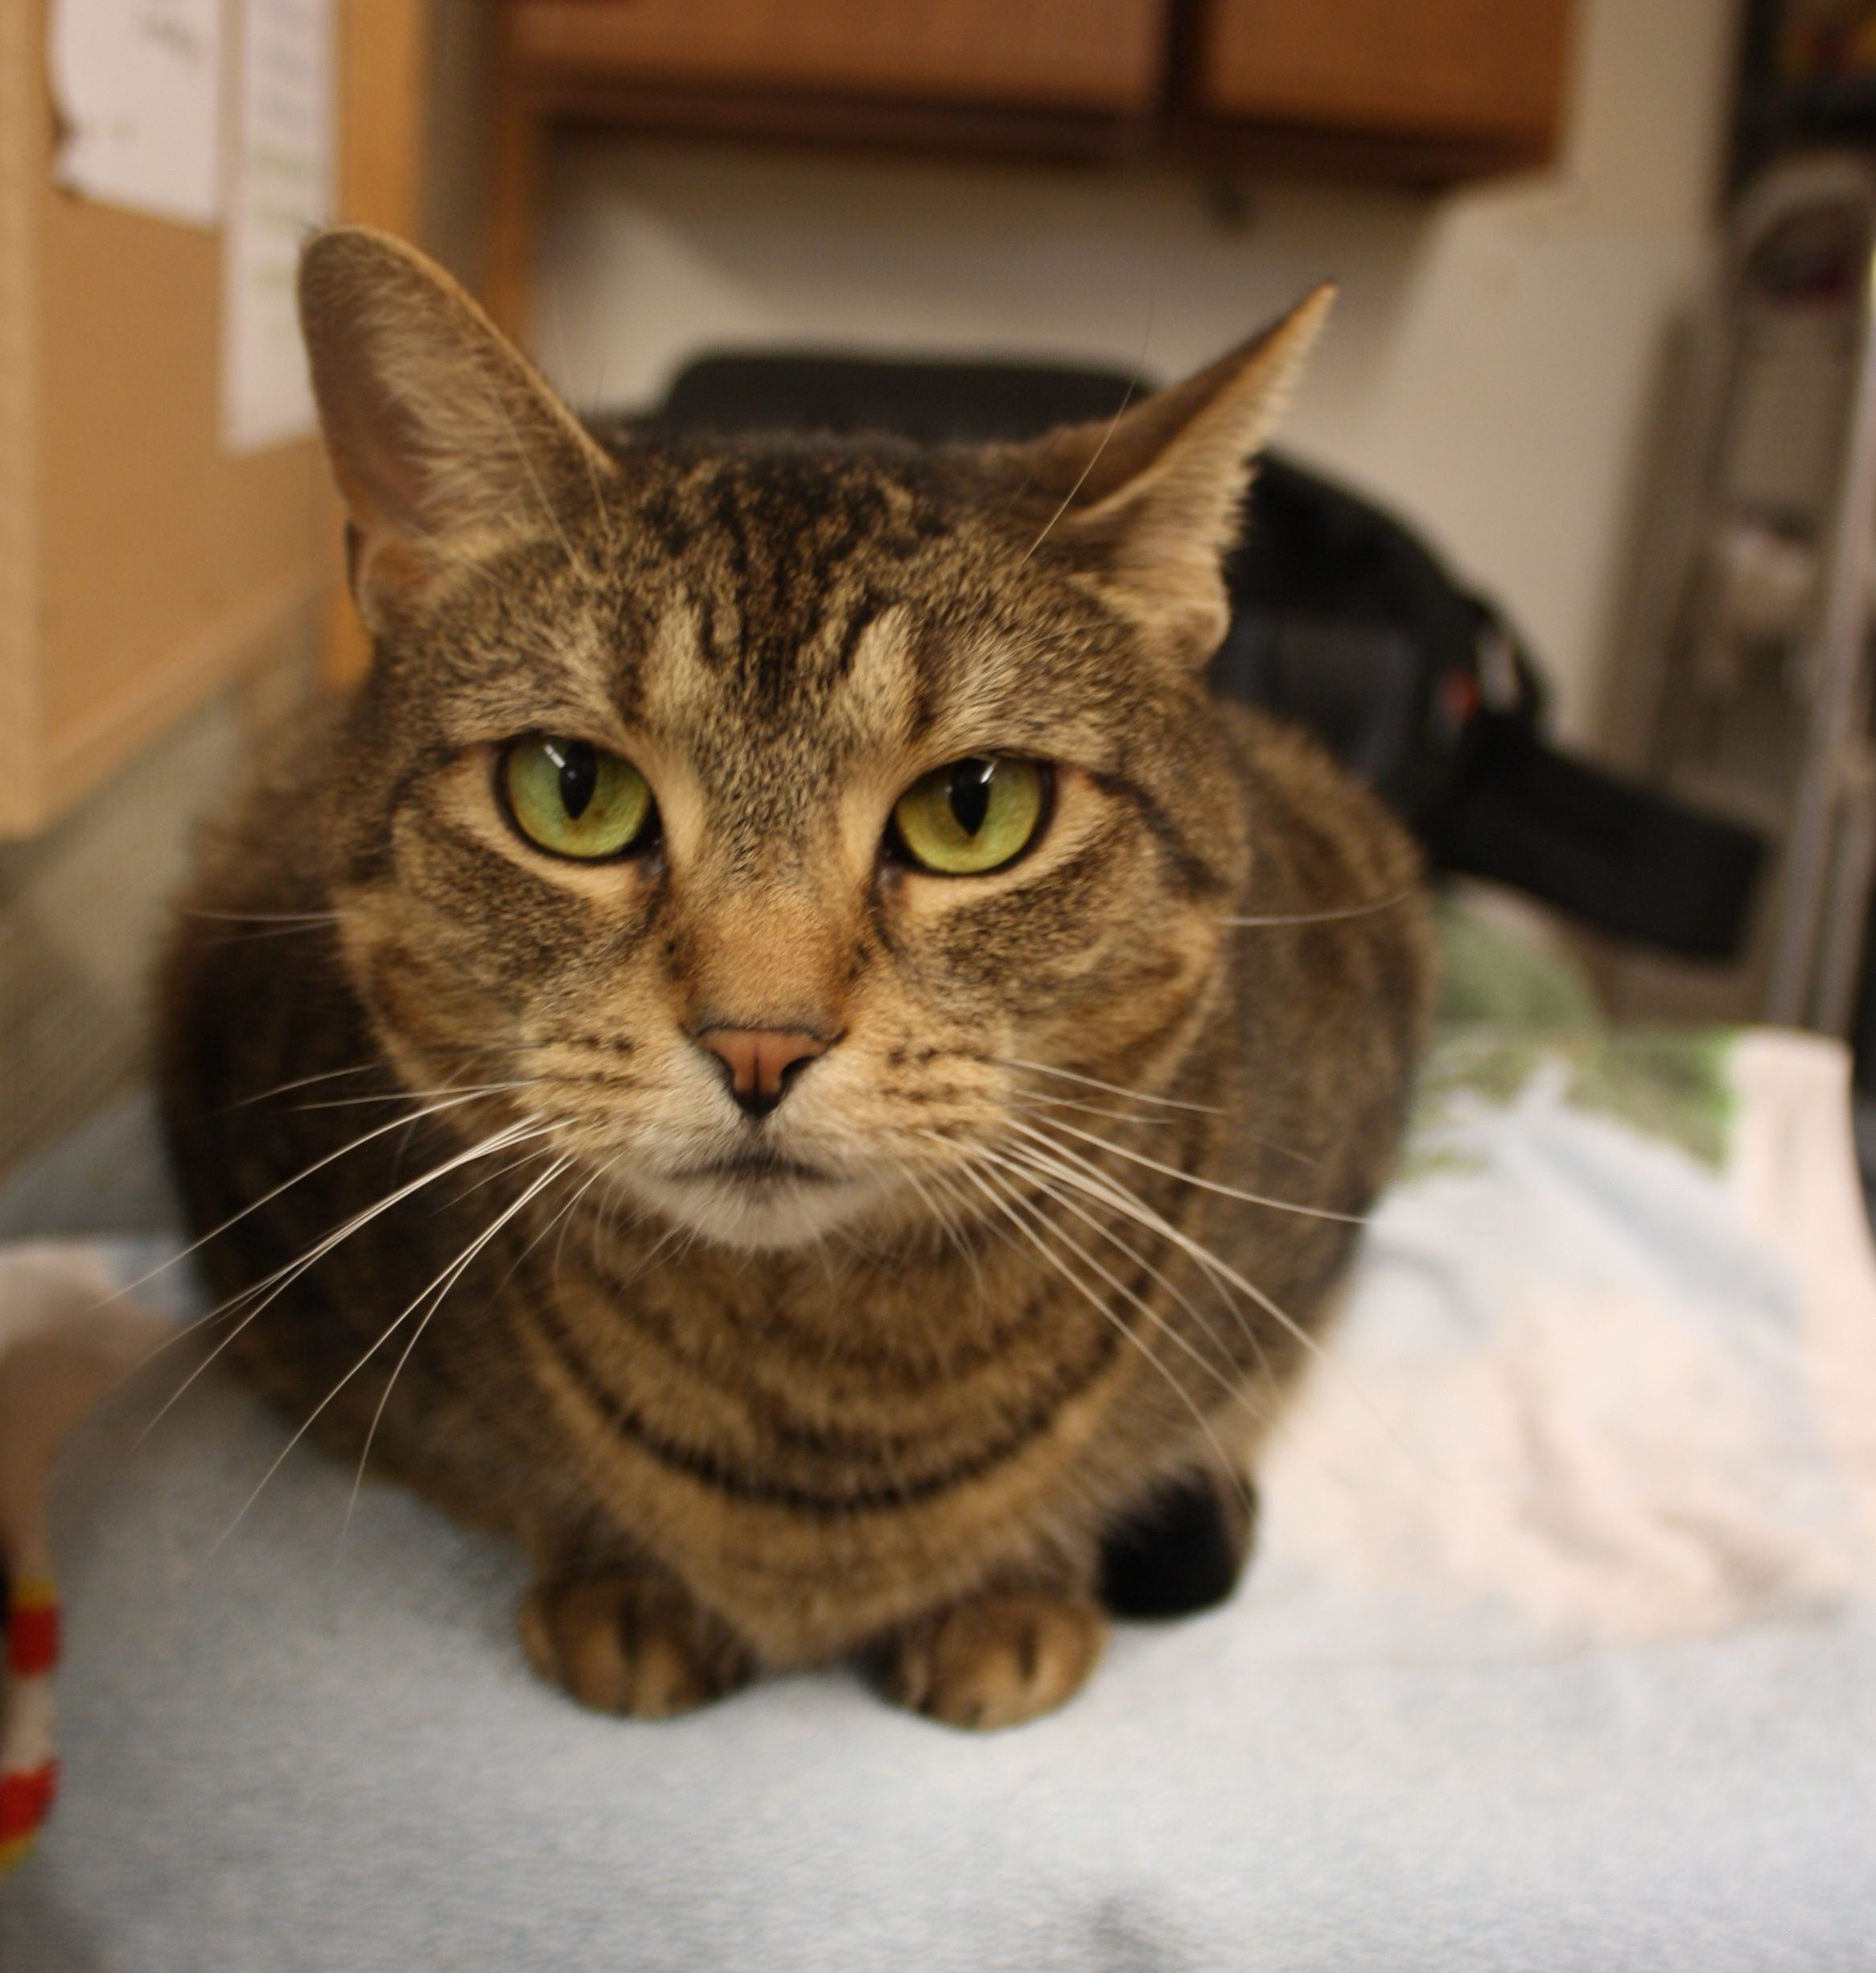 Rhianna Is A Beautiful Cat Available For Adoption At The Humane